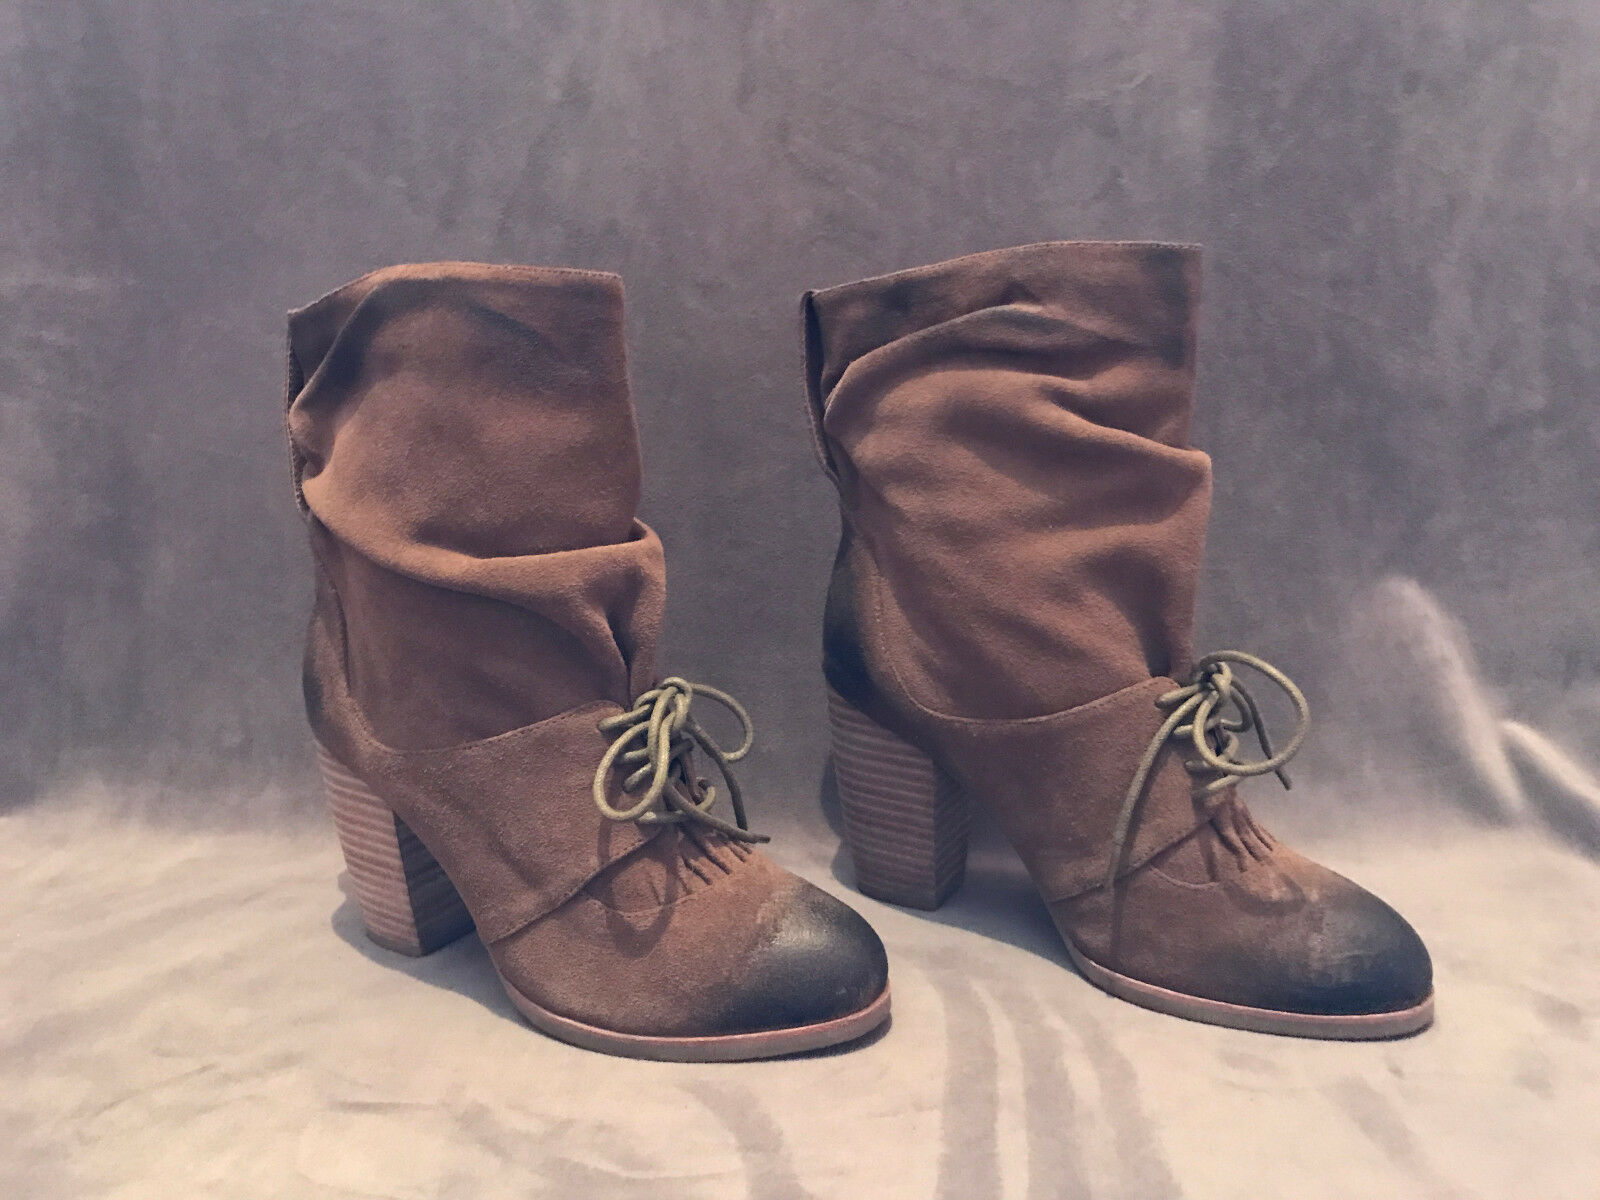 NEW ANTHROPOLOGIE MIDCALF ANTELOPE BROWN FRONT TIE MIDCALF ANTHROPOLOGIE Stiefel Schuhe SZ 37 bf087f